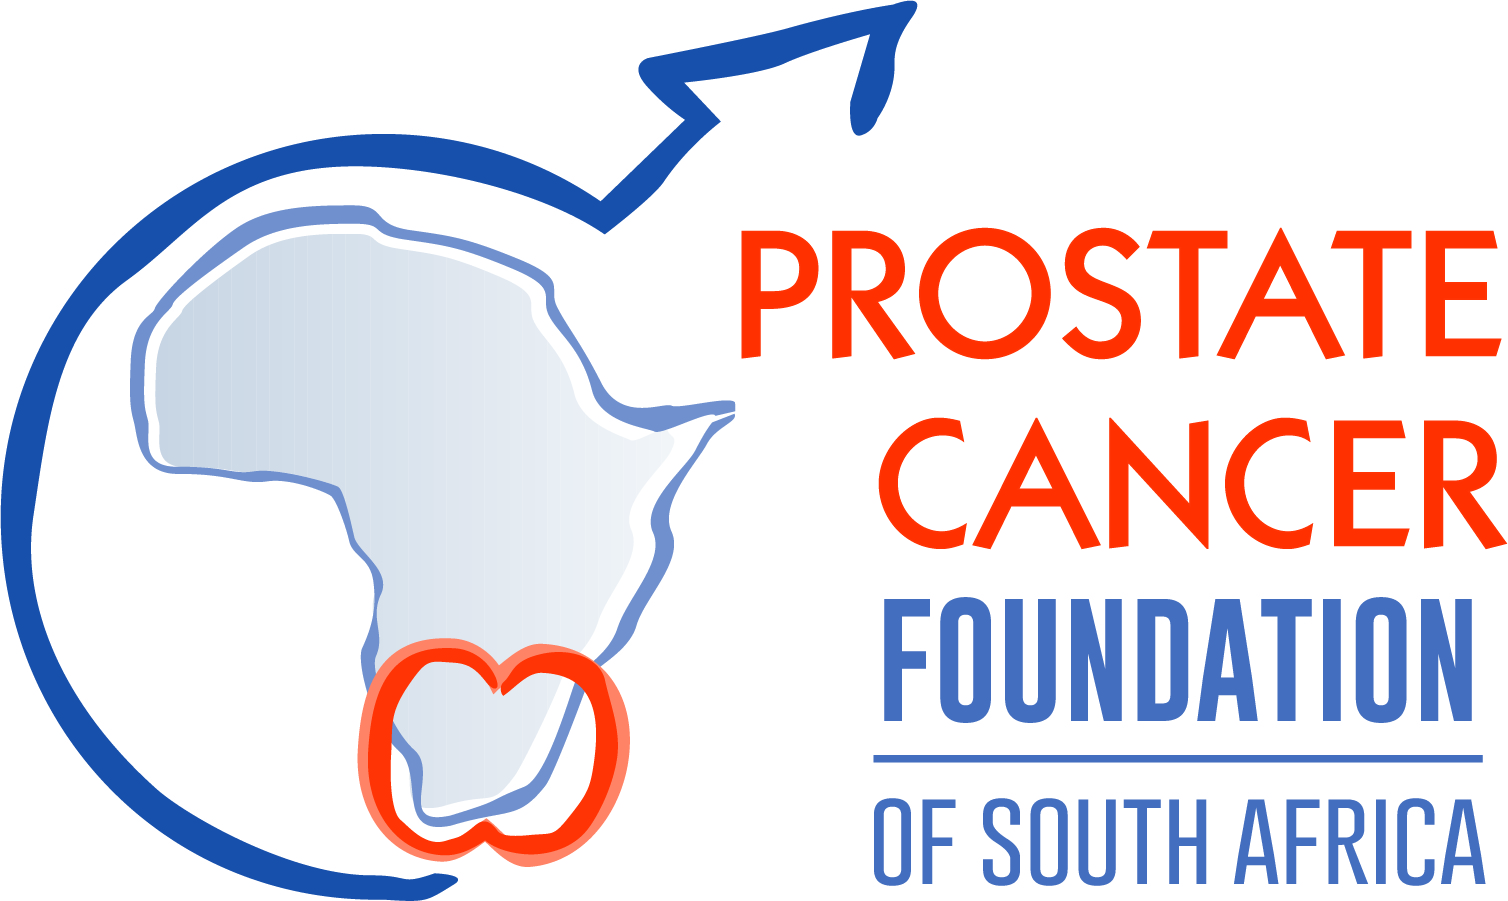 Prostate Cancer Foundation of South Africa